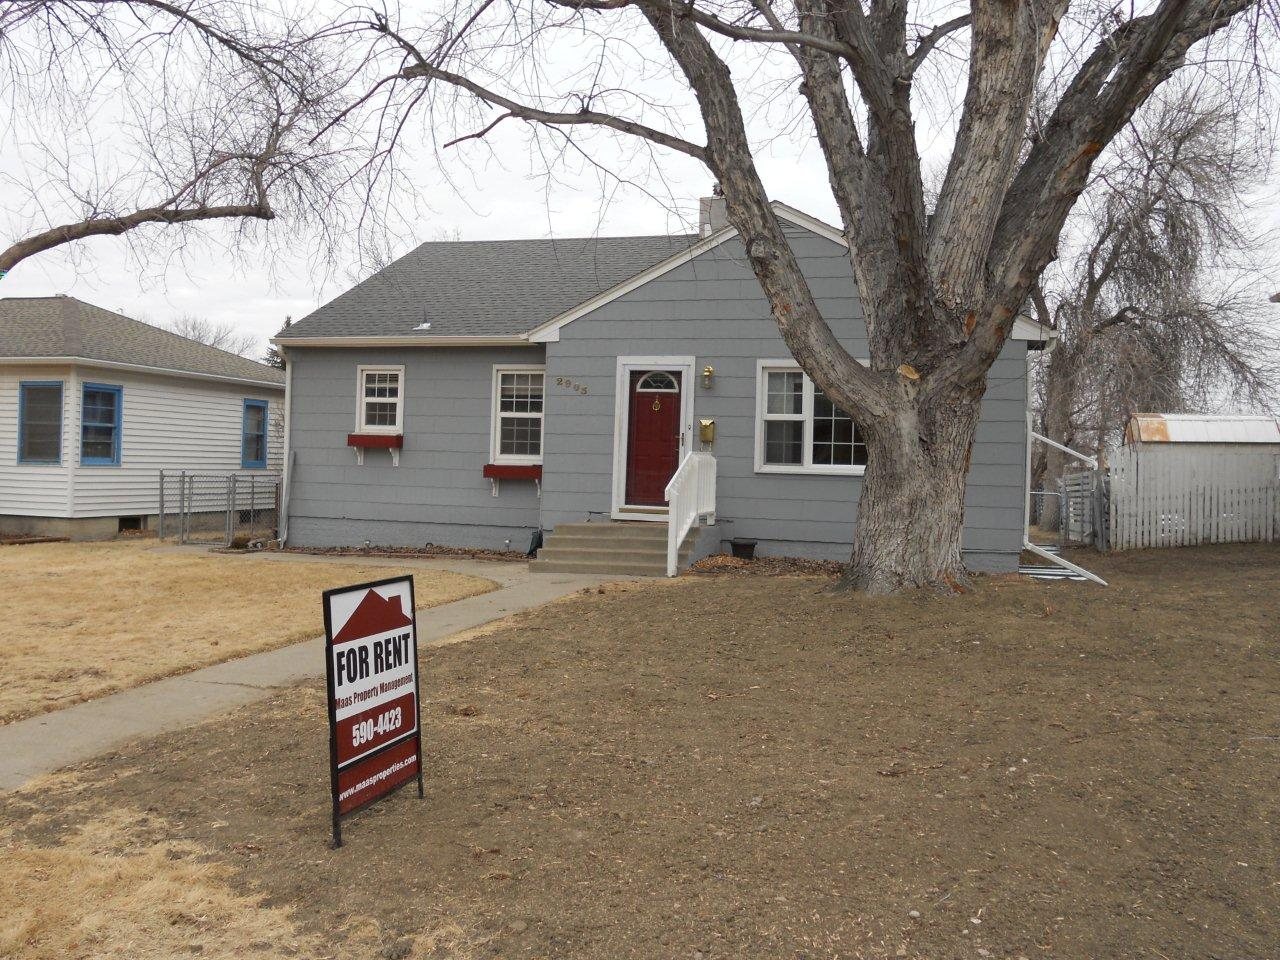 5 Bedroom 2 Bathroom Home For Rent in Great Falls Montana